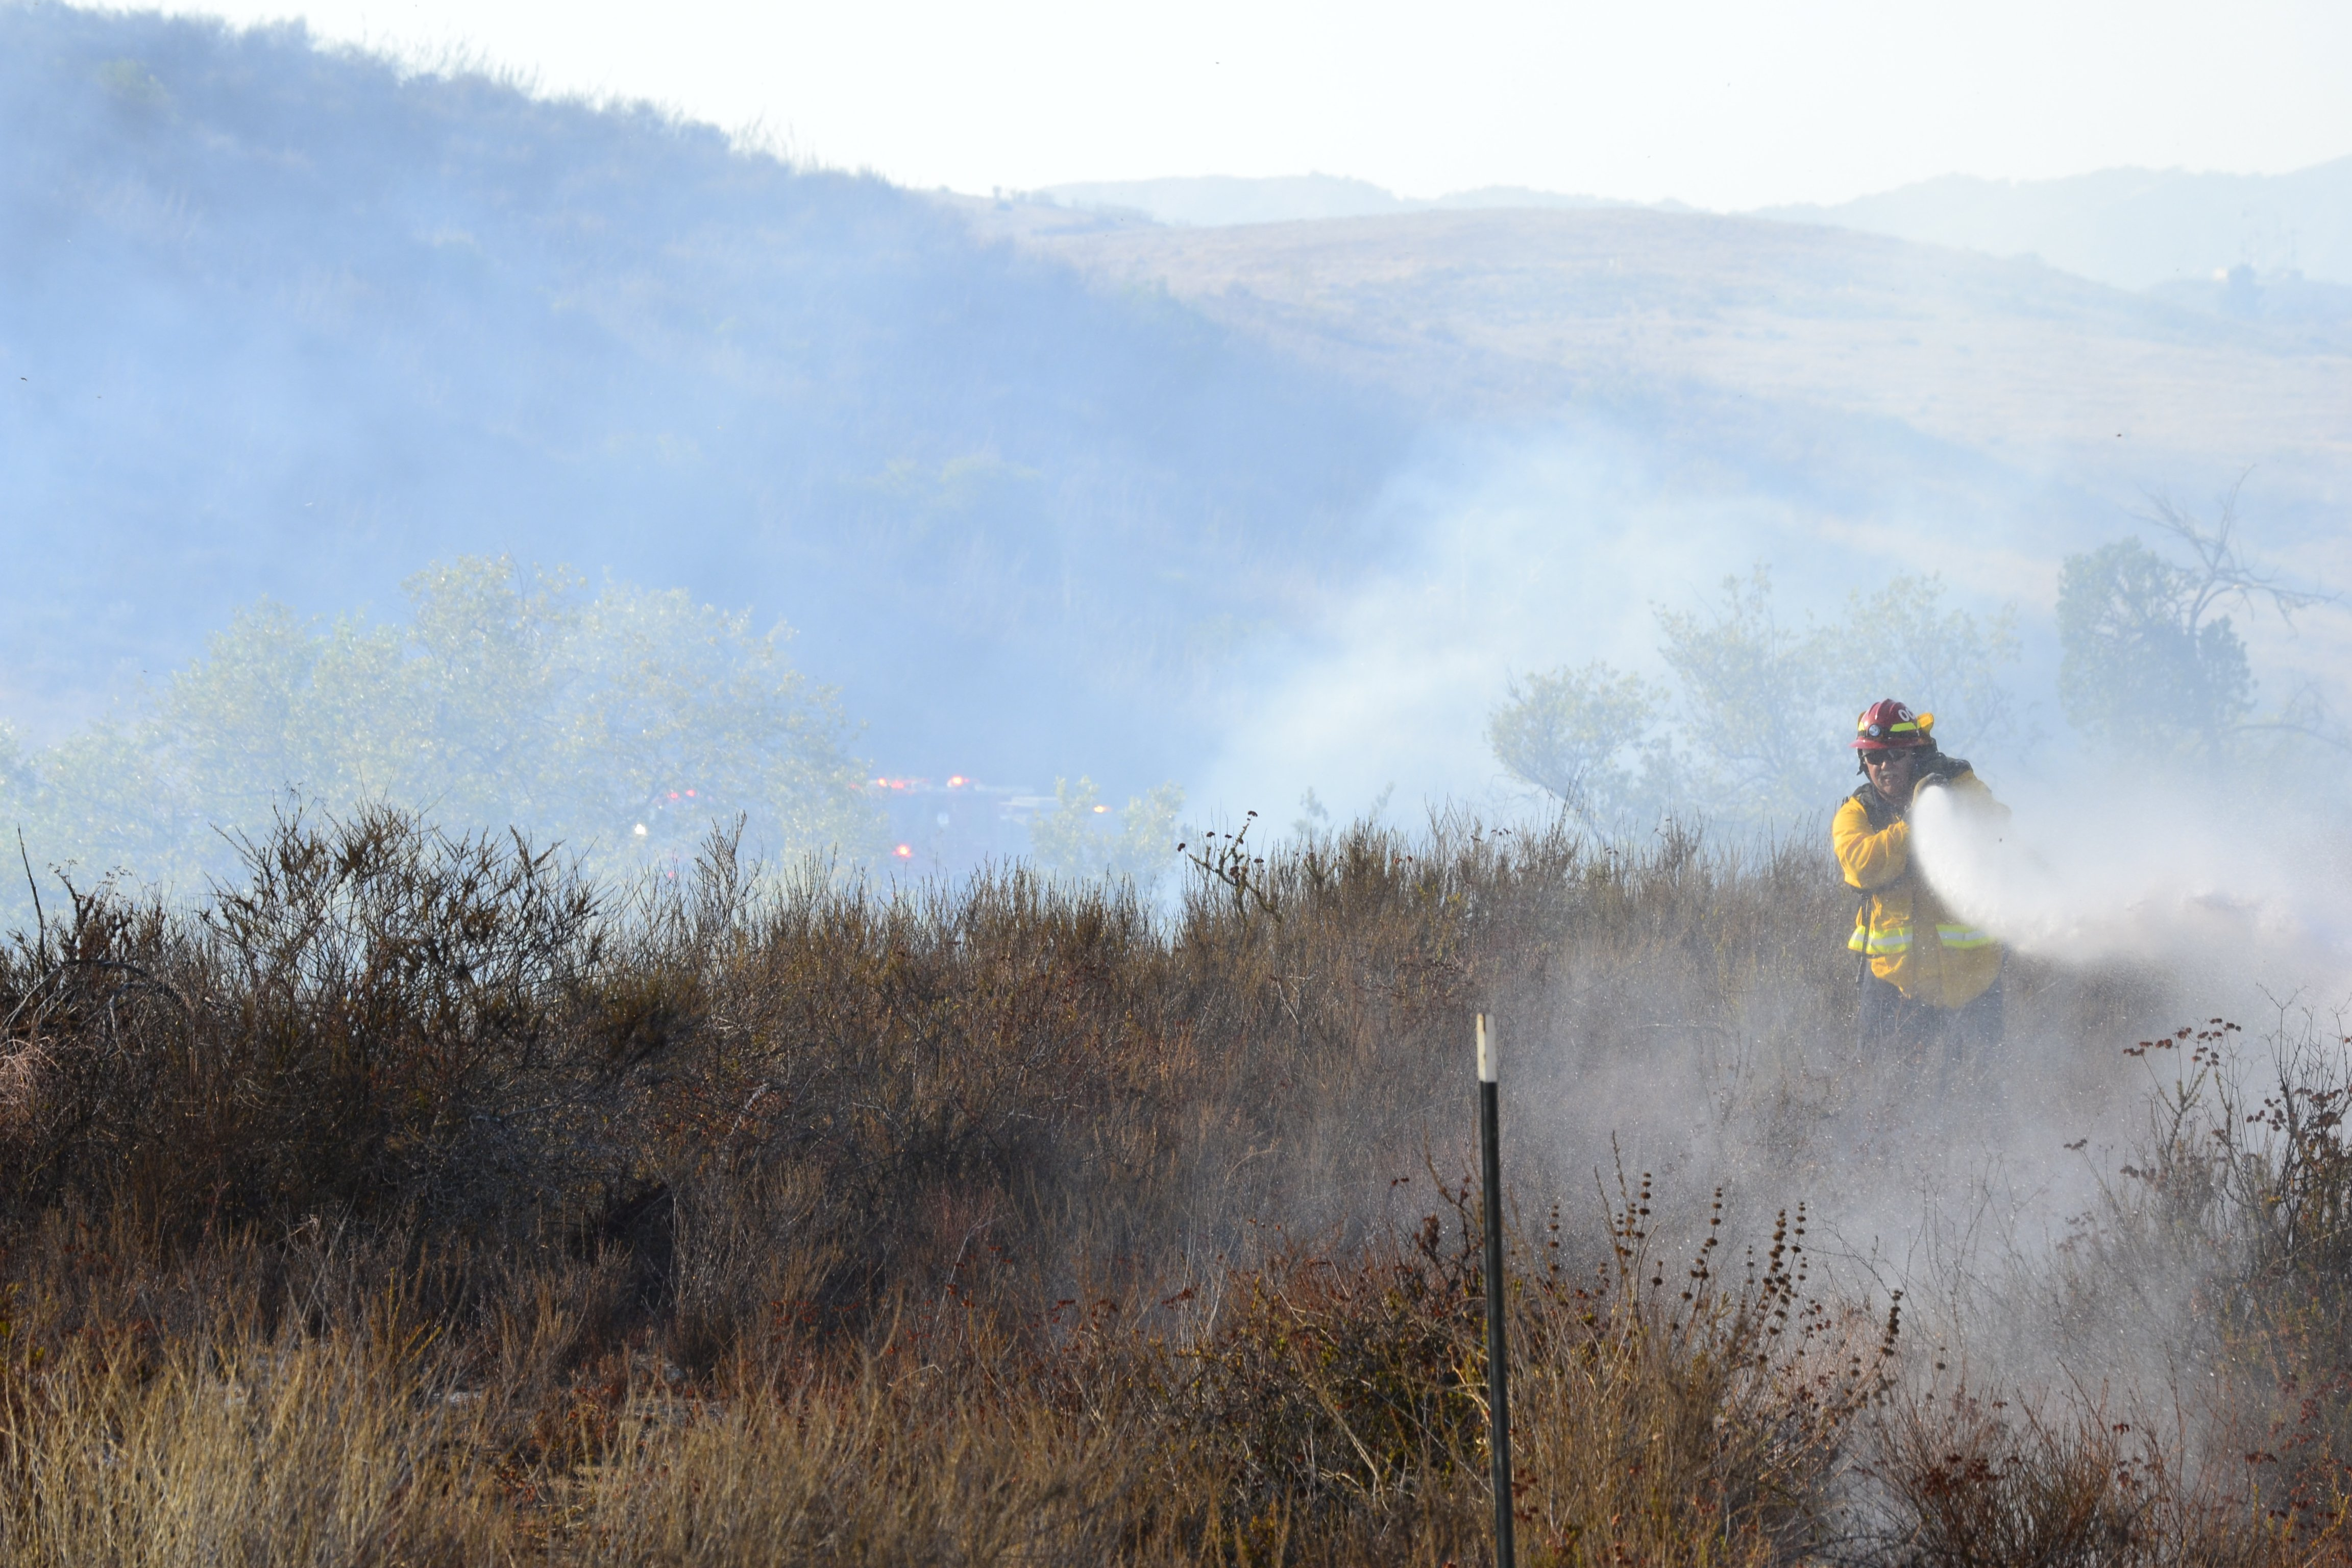 © A fireman fights a brush fire near Camp Pendleton. Photo submitted online by Tiphanie.